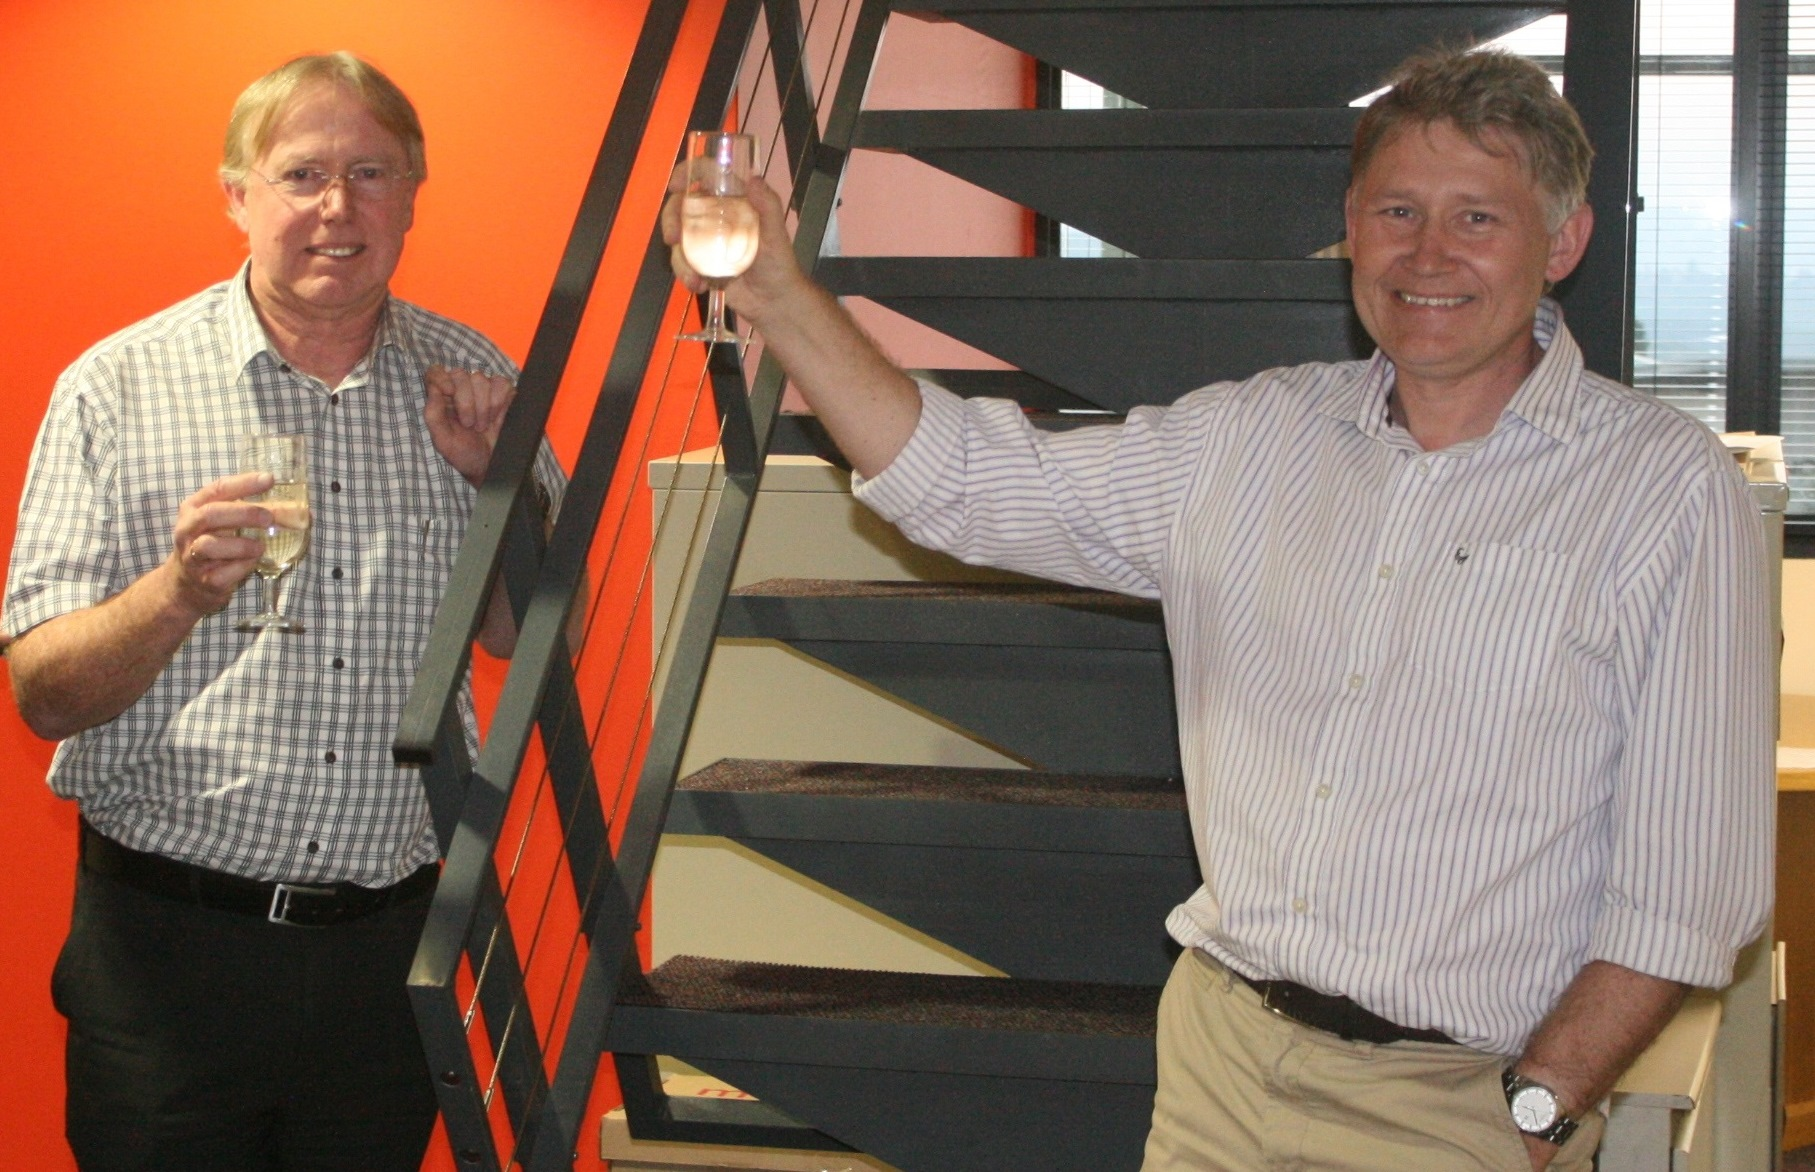 Celebrating 25 years - Rob McNeill, corporate consultant and principal geotechnical civil engineer (left) and Angus Bracken, partner and principal engineering geologist.